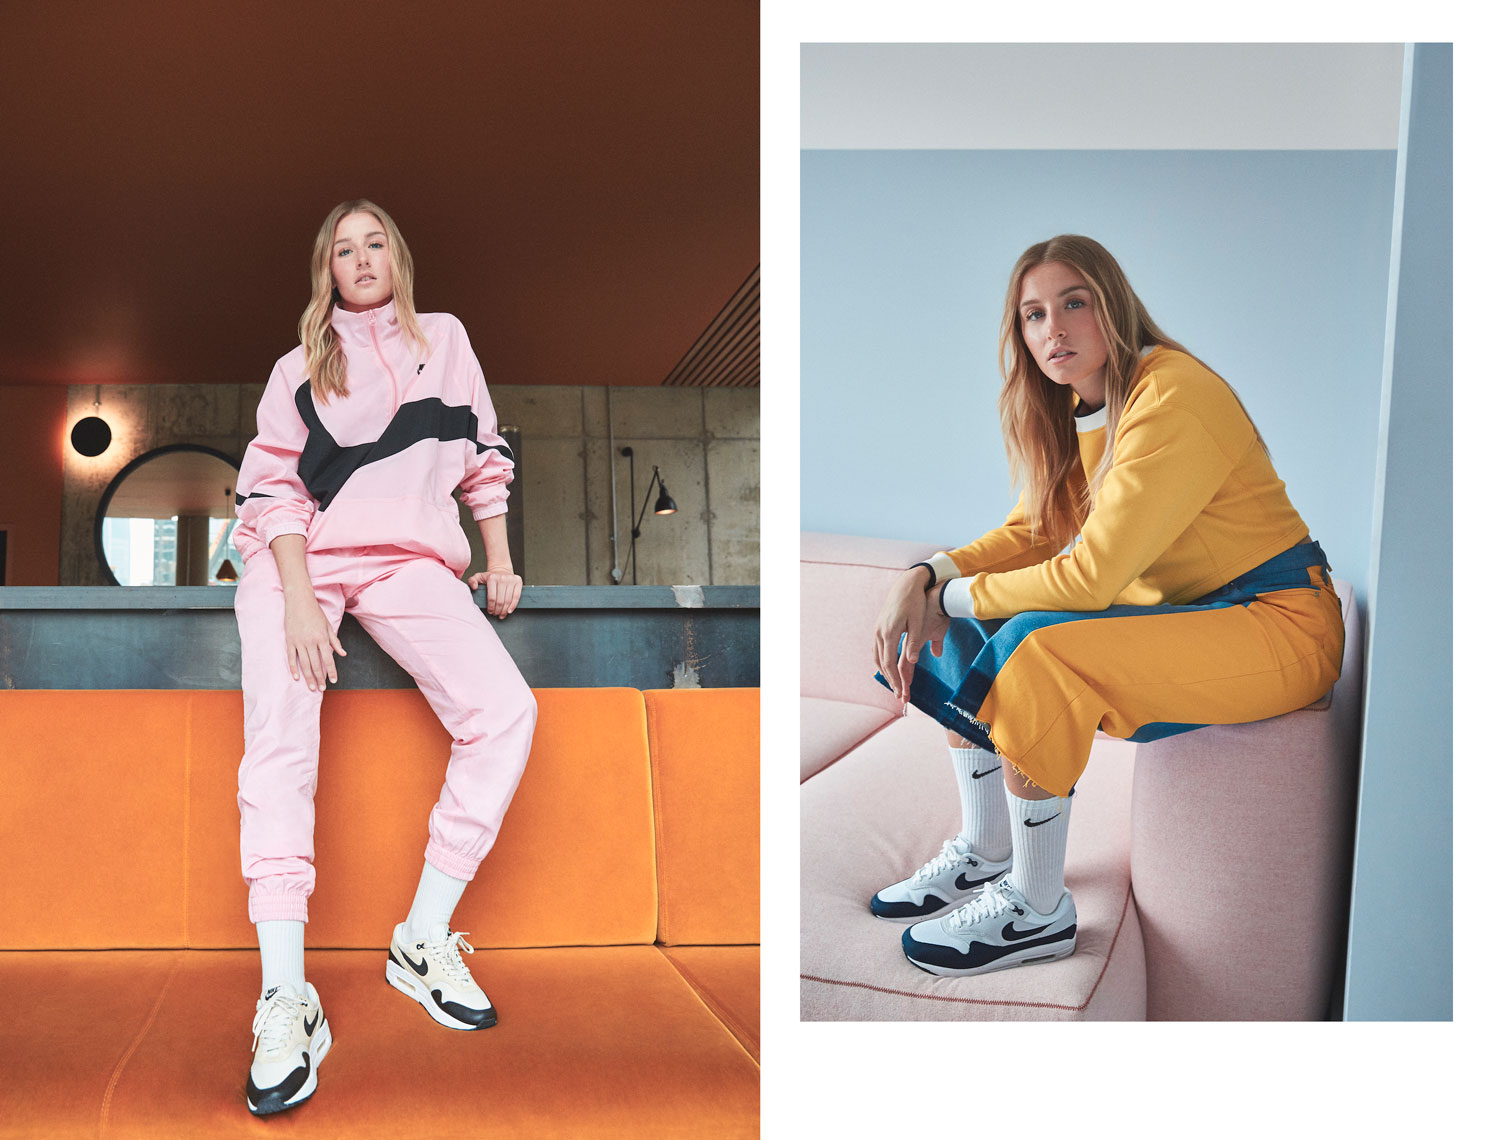 issie-gibbons-fashion-stylist-leah-williamsonn-nike-airmax-campaign-pink-yellow